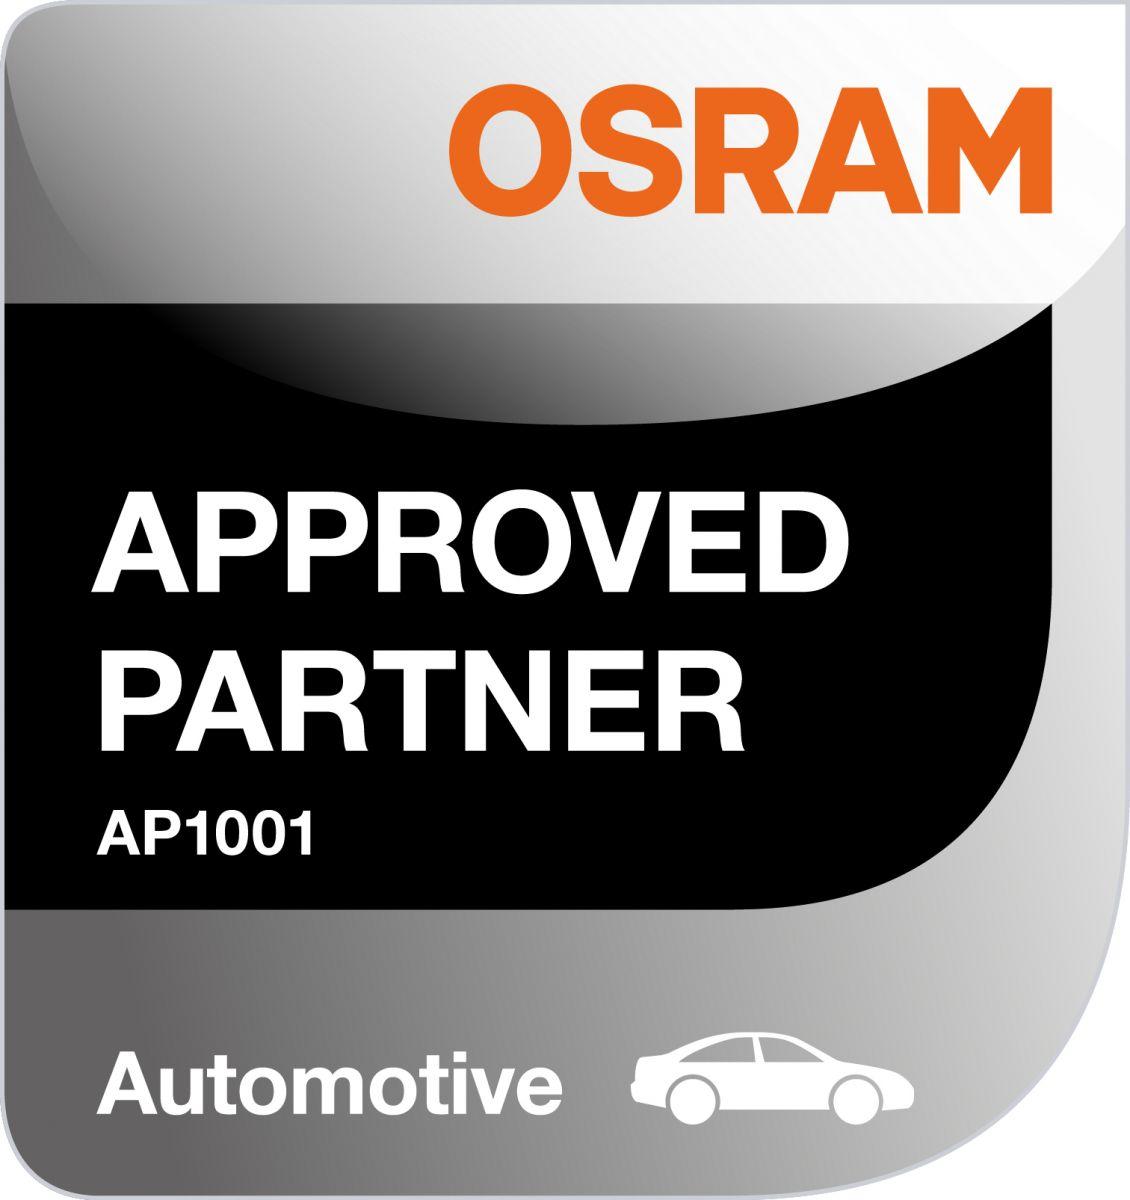 https://driven2automotive.com/ebaystore/images_2018/osram/ap_logo/OSRAM_ApprovedPartner_AP1001_AM_Black_RGB_20160724.jpg